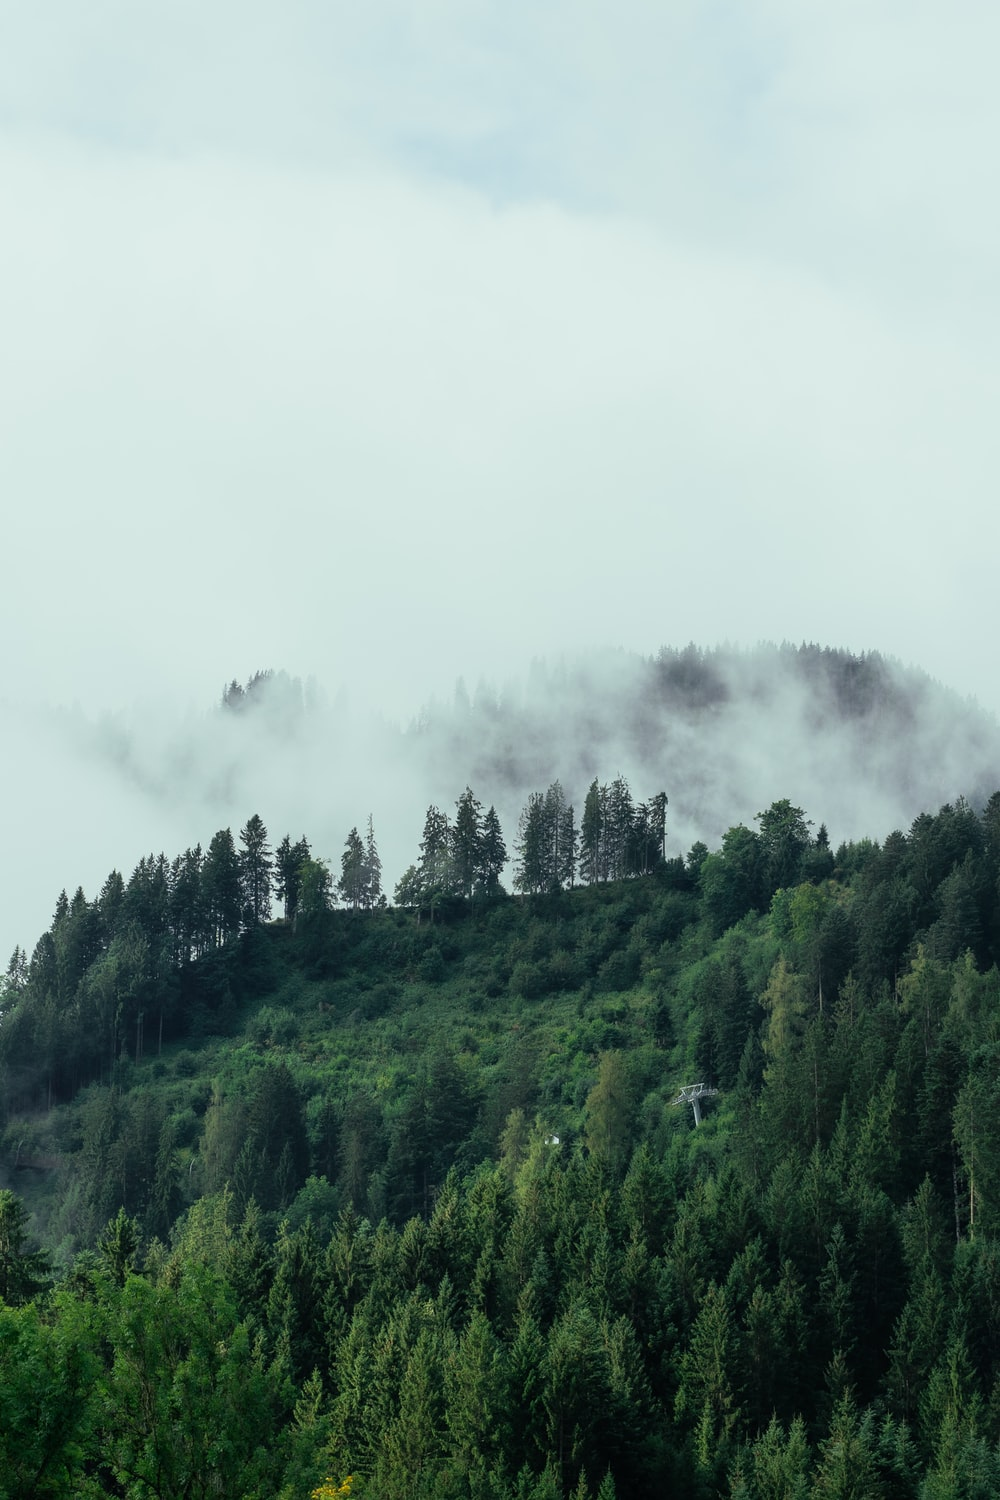 green trees on foggy weather